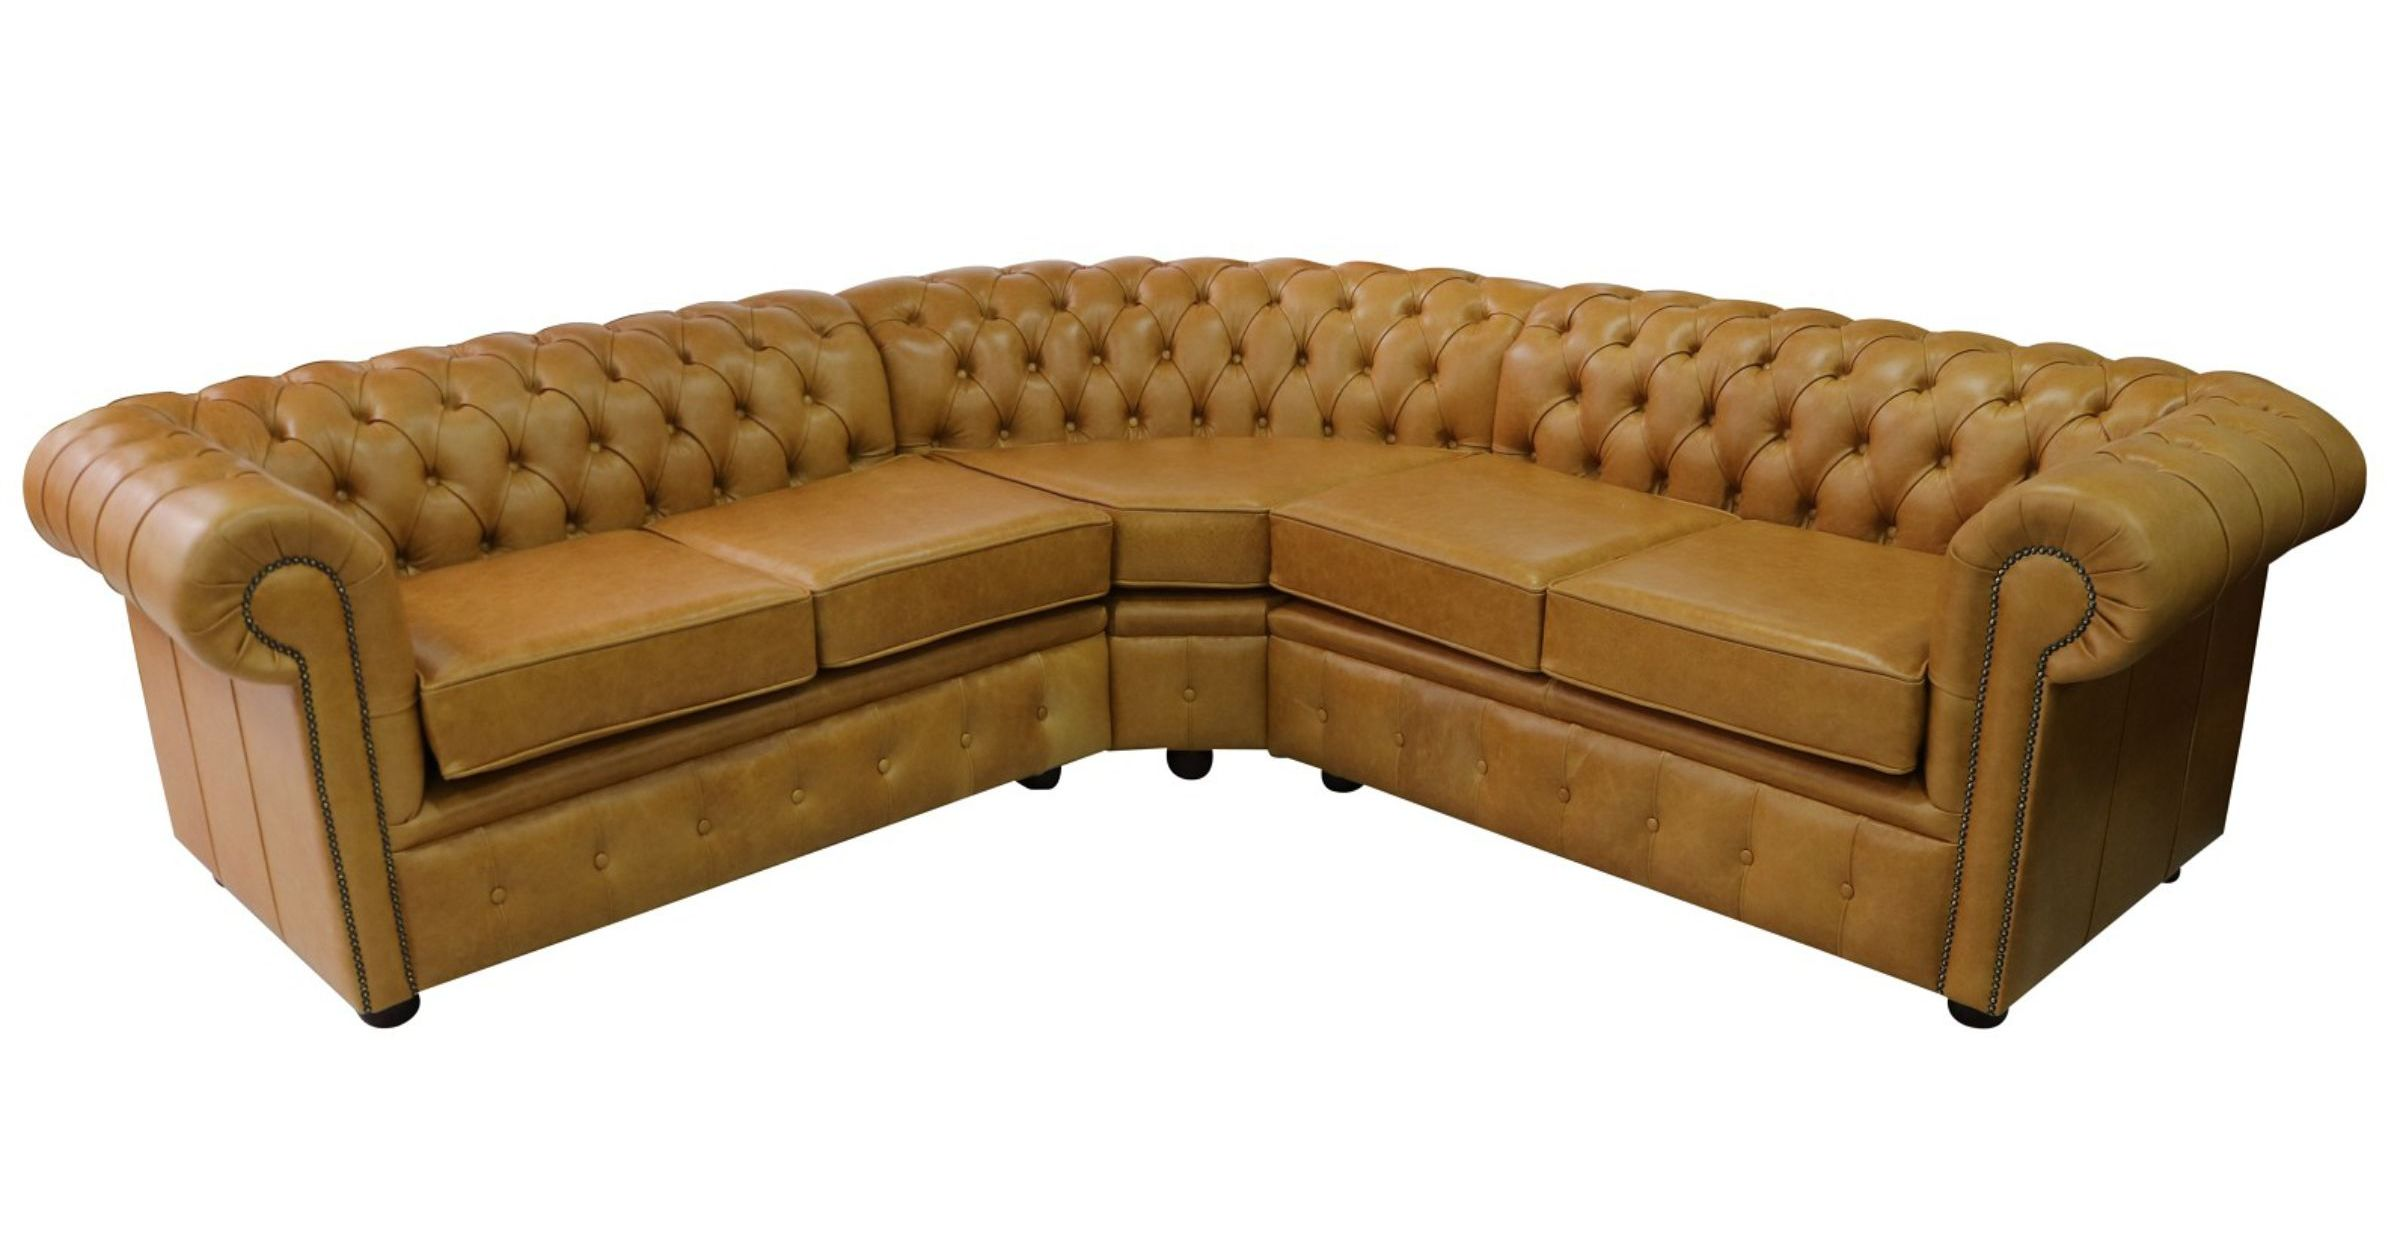 4 Seater Chesterfield Corner Sofa Chesterfield Corner Sofa Unit Cushioned 2 Seater + Corner